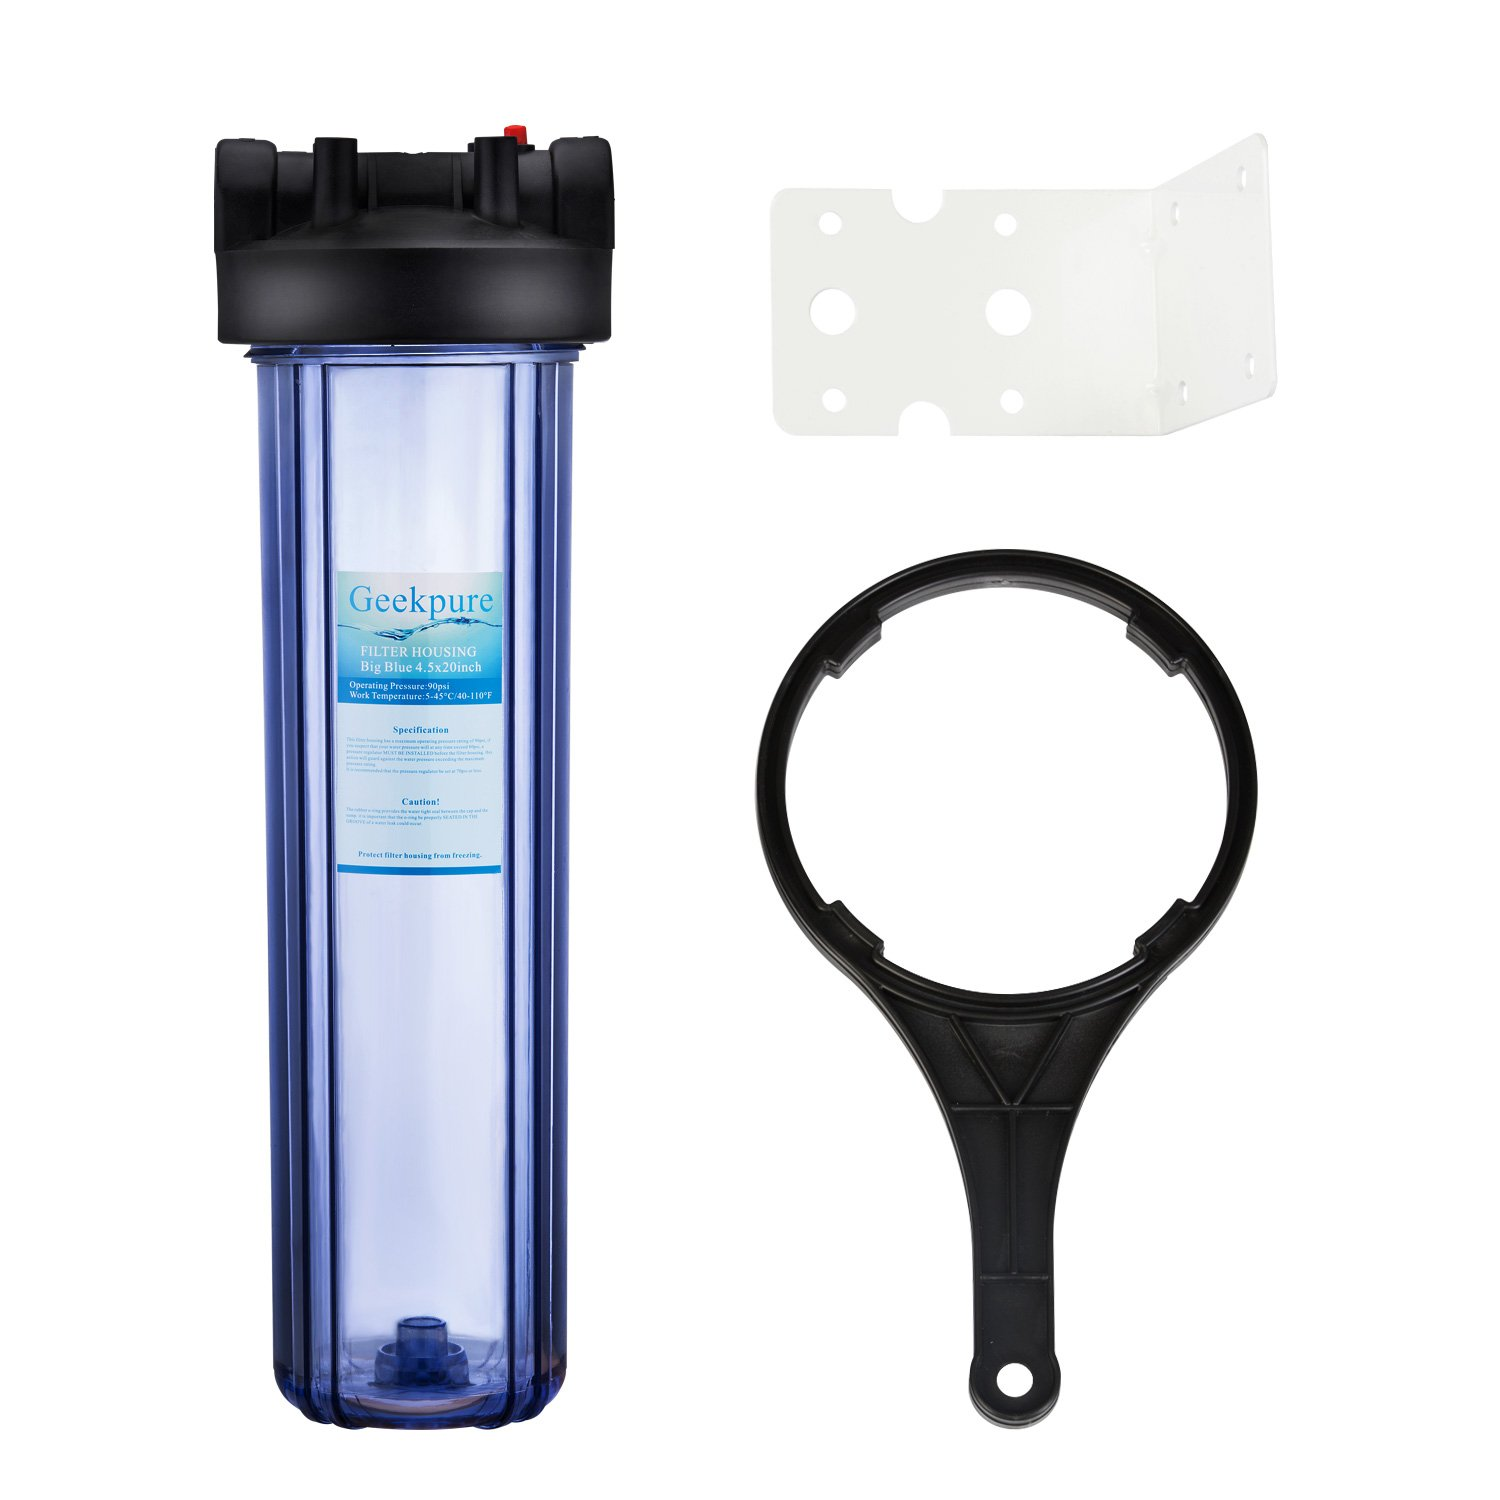 Geekpure 20-Inch Big Blue Water Filter Housing 1-Inch Outlet/Inlet with Wrench and Bracket and Filter Cartridges (Clear Housing)